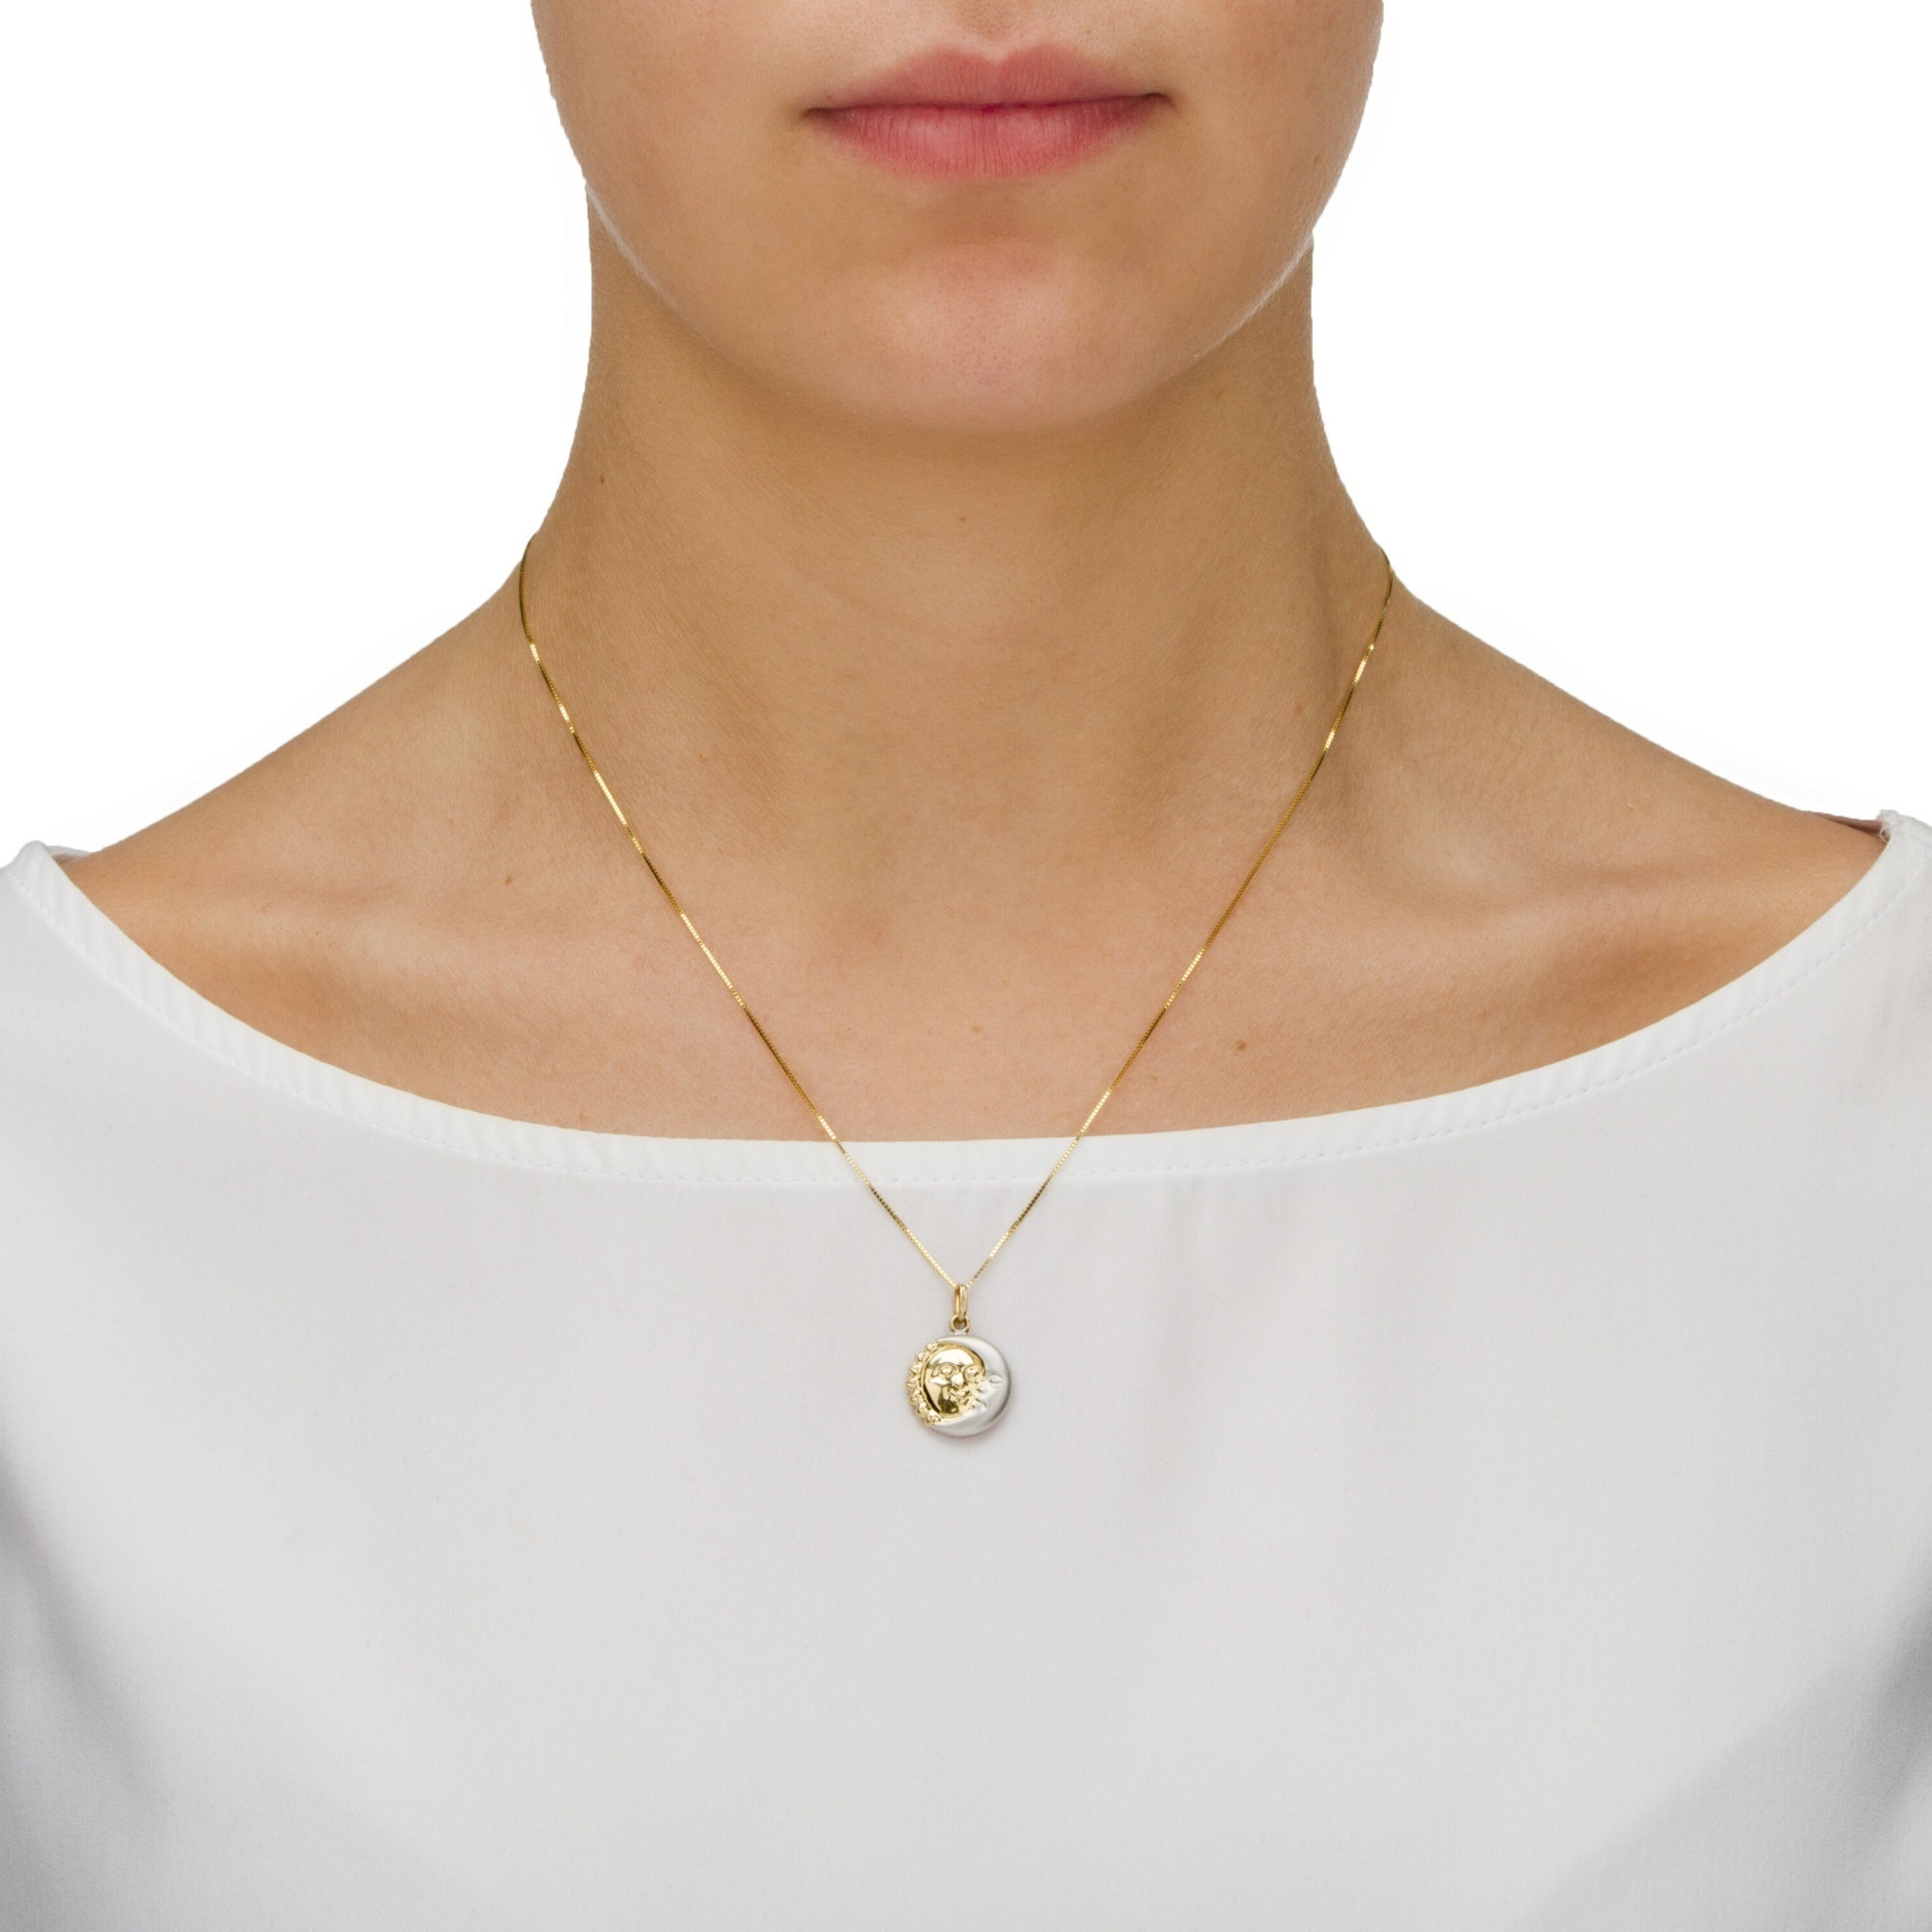 in moon di gregorio lia pendant single pearl sunmoon yellow jewels taglio necklace n sun gold